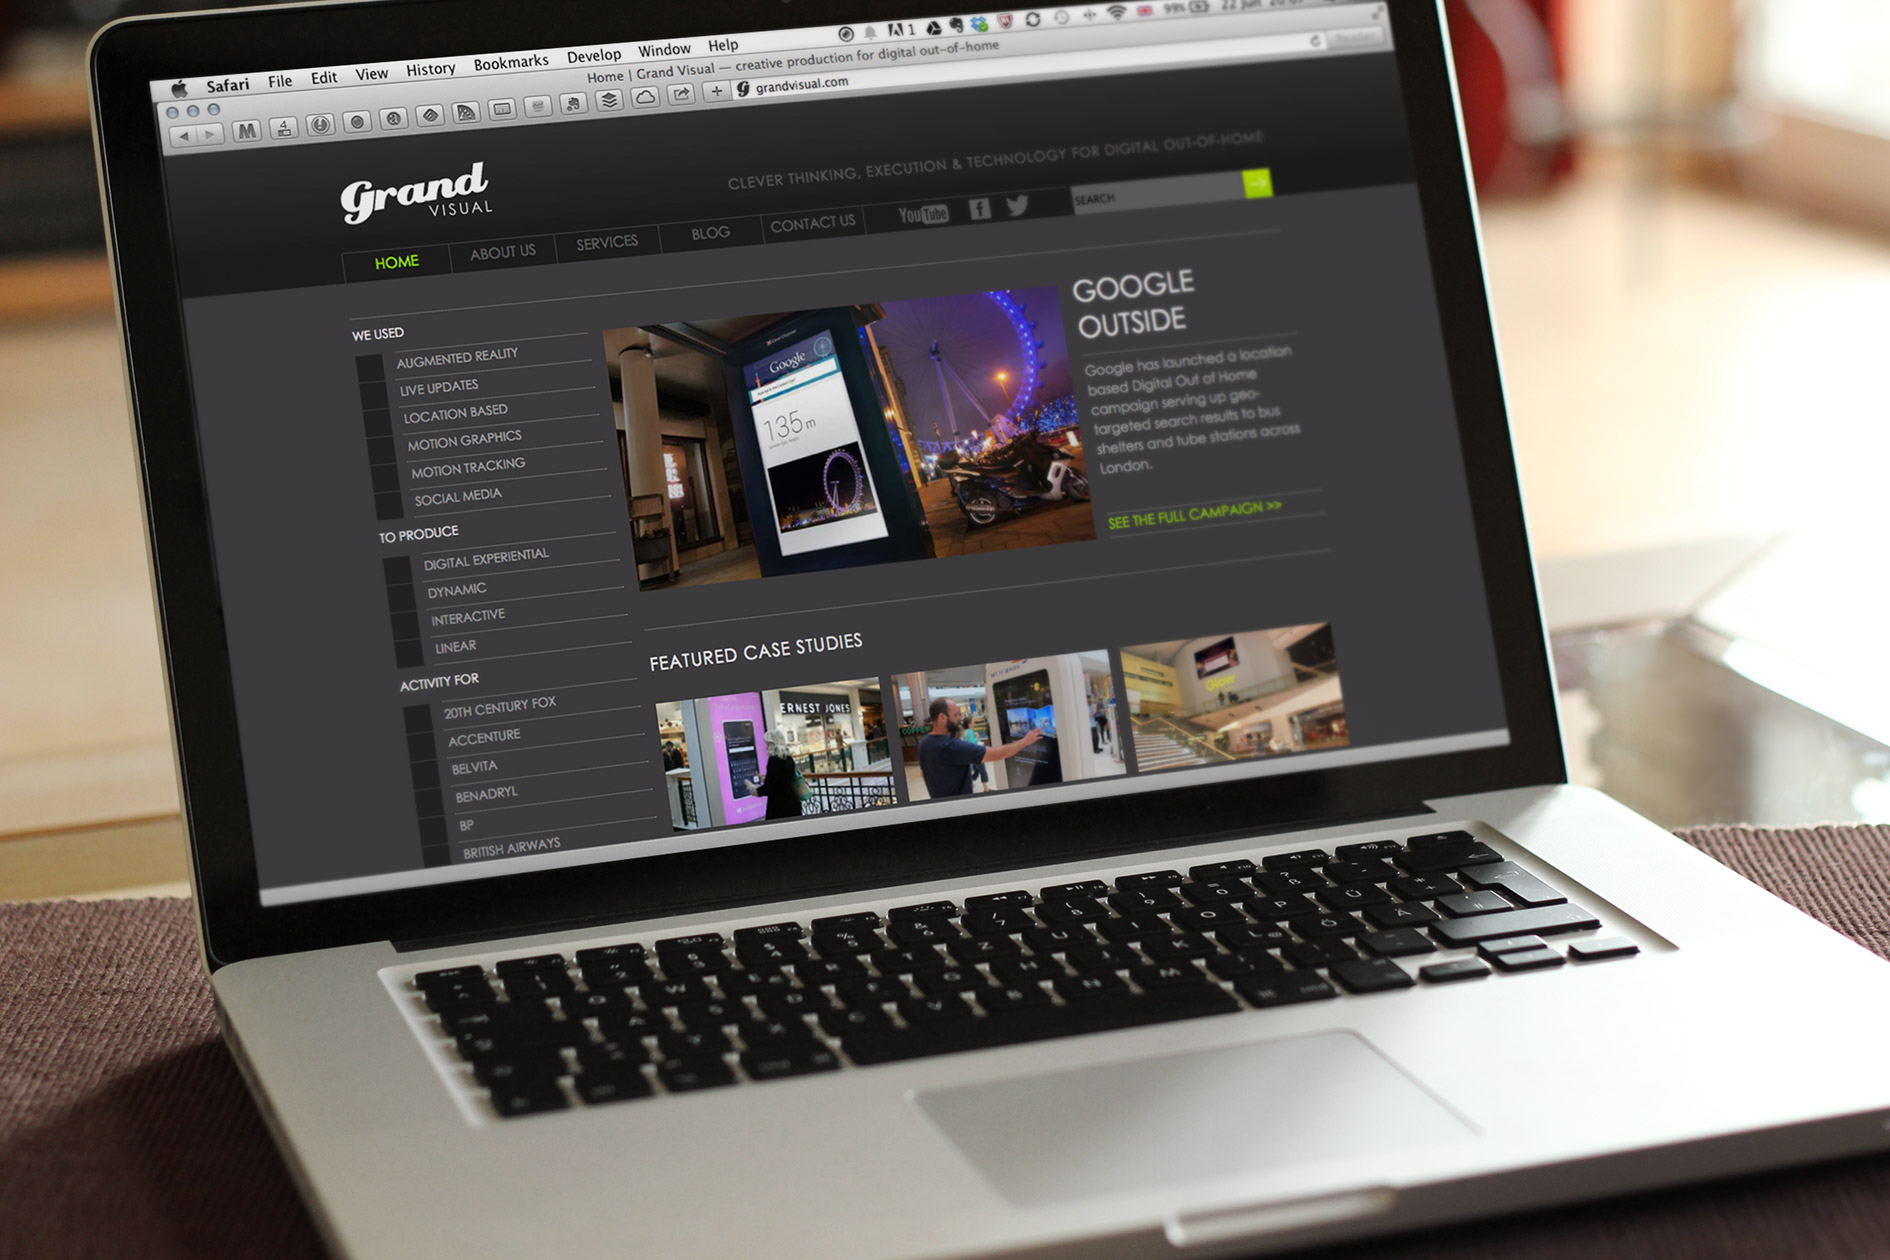 The Grand Visual website homepage displayed on a laptop — Tribus Creative, web design for small business